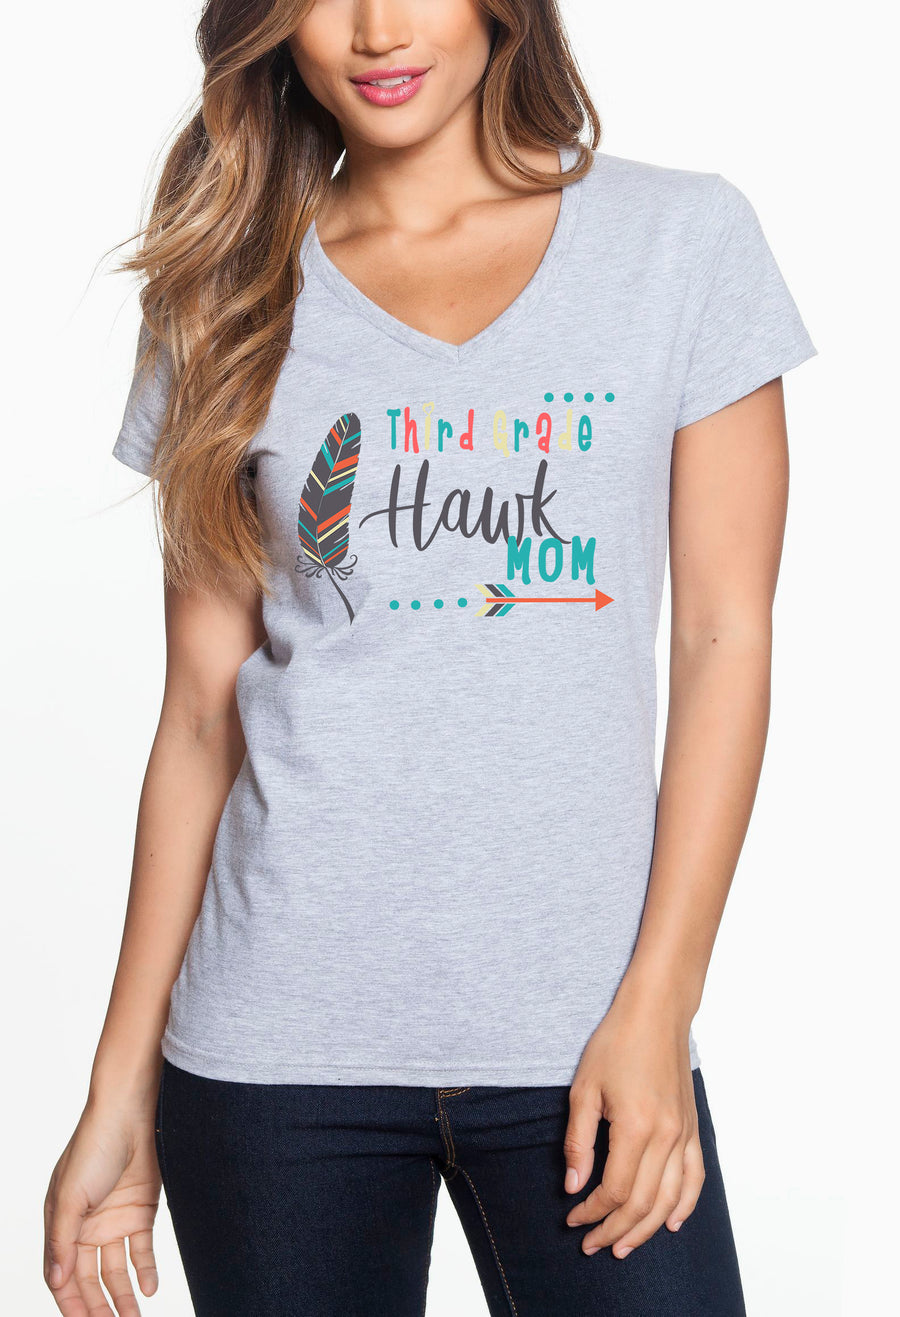 Third Grade Mom - Women's Lightweight V-Neck Tee Grey